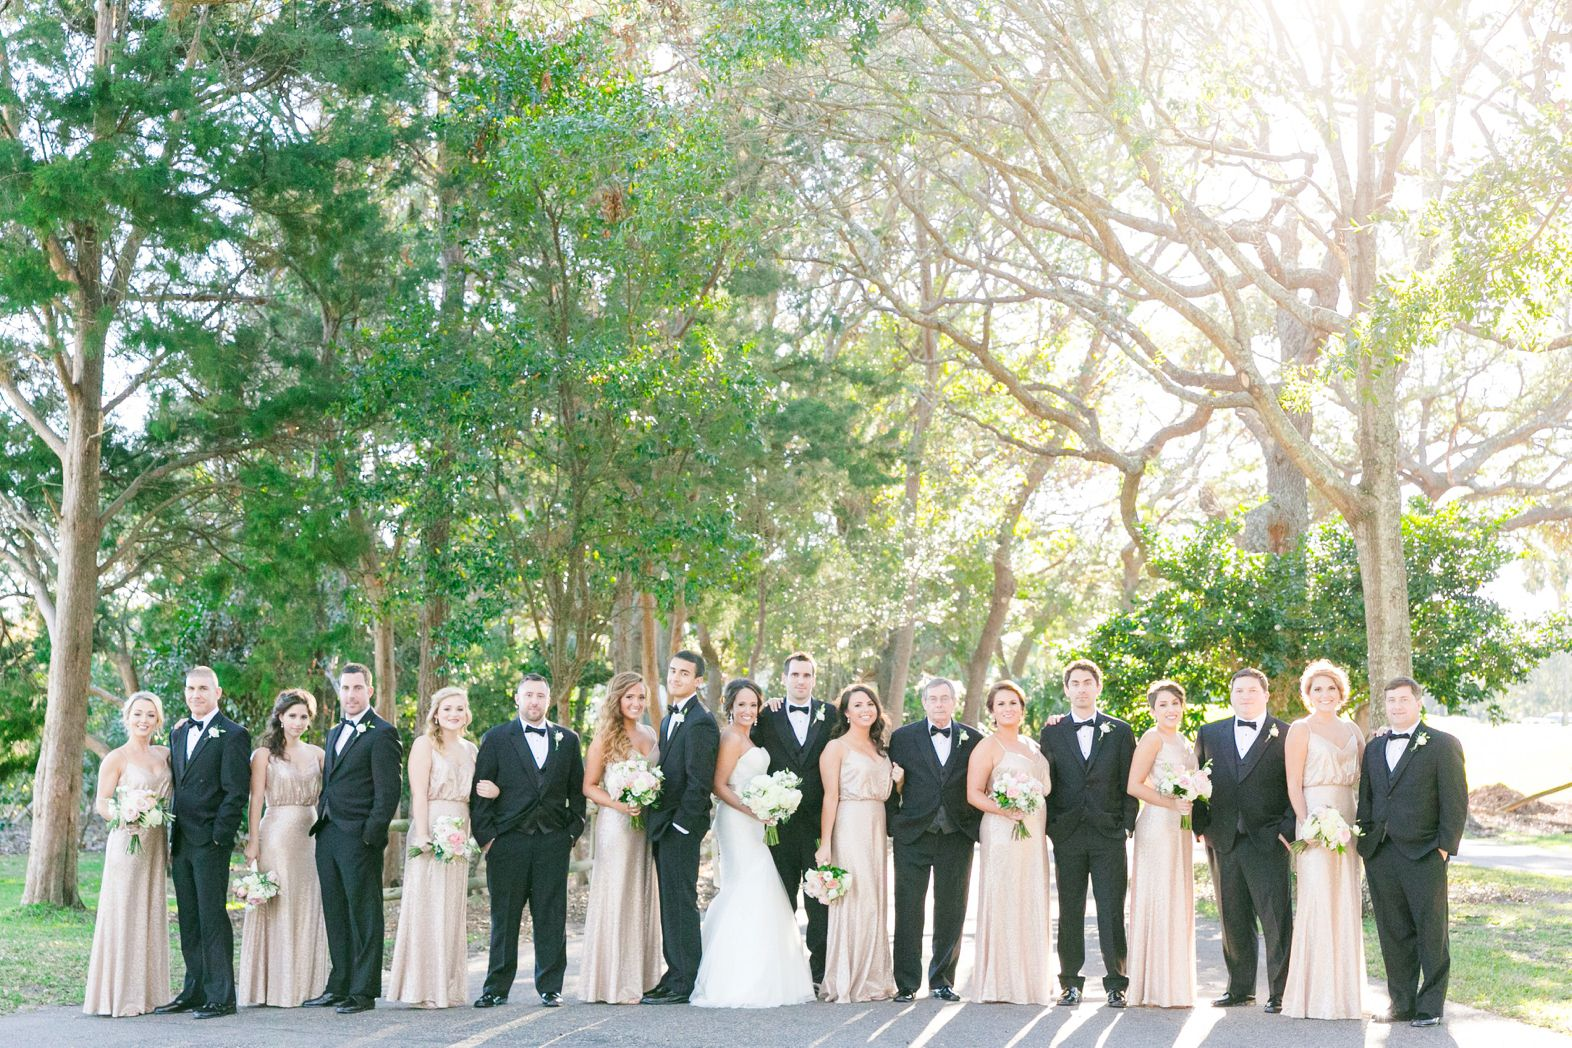 Rose Gold Sequined Bridesmaid Dresses And Black Tuxes Elegant Blush Gold Wedding At The Dunes Club In Myrtle Beac Blush Gold Wedding Blush And Gold Wedding [ 1048 x 1572 Pixel ]